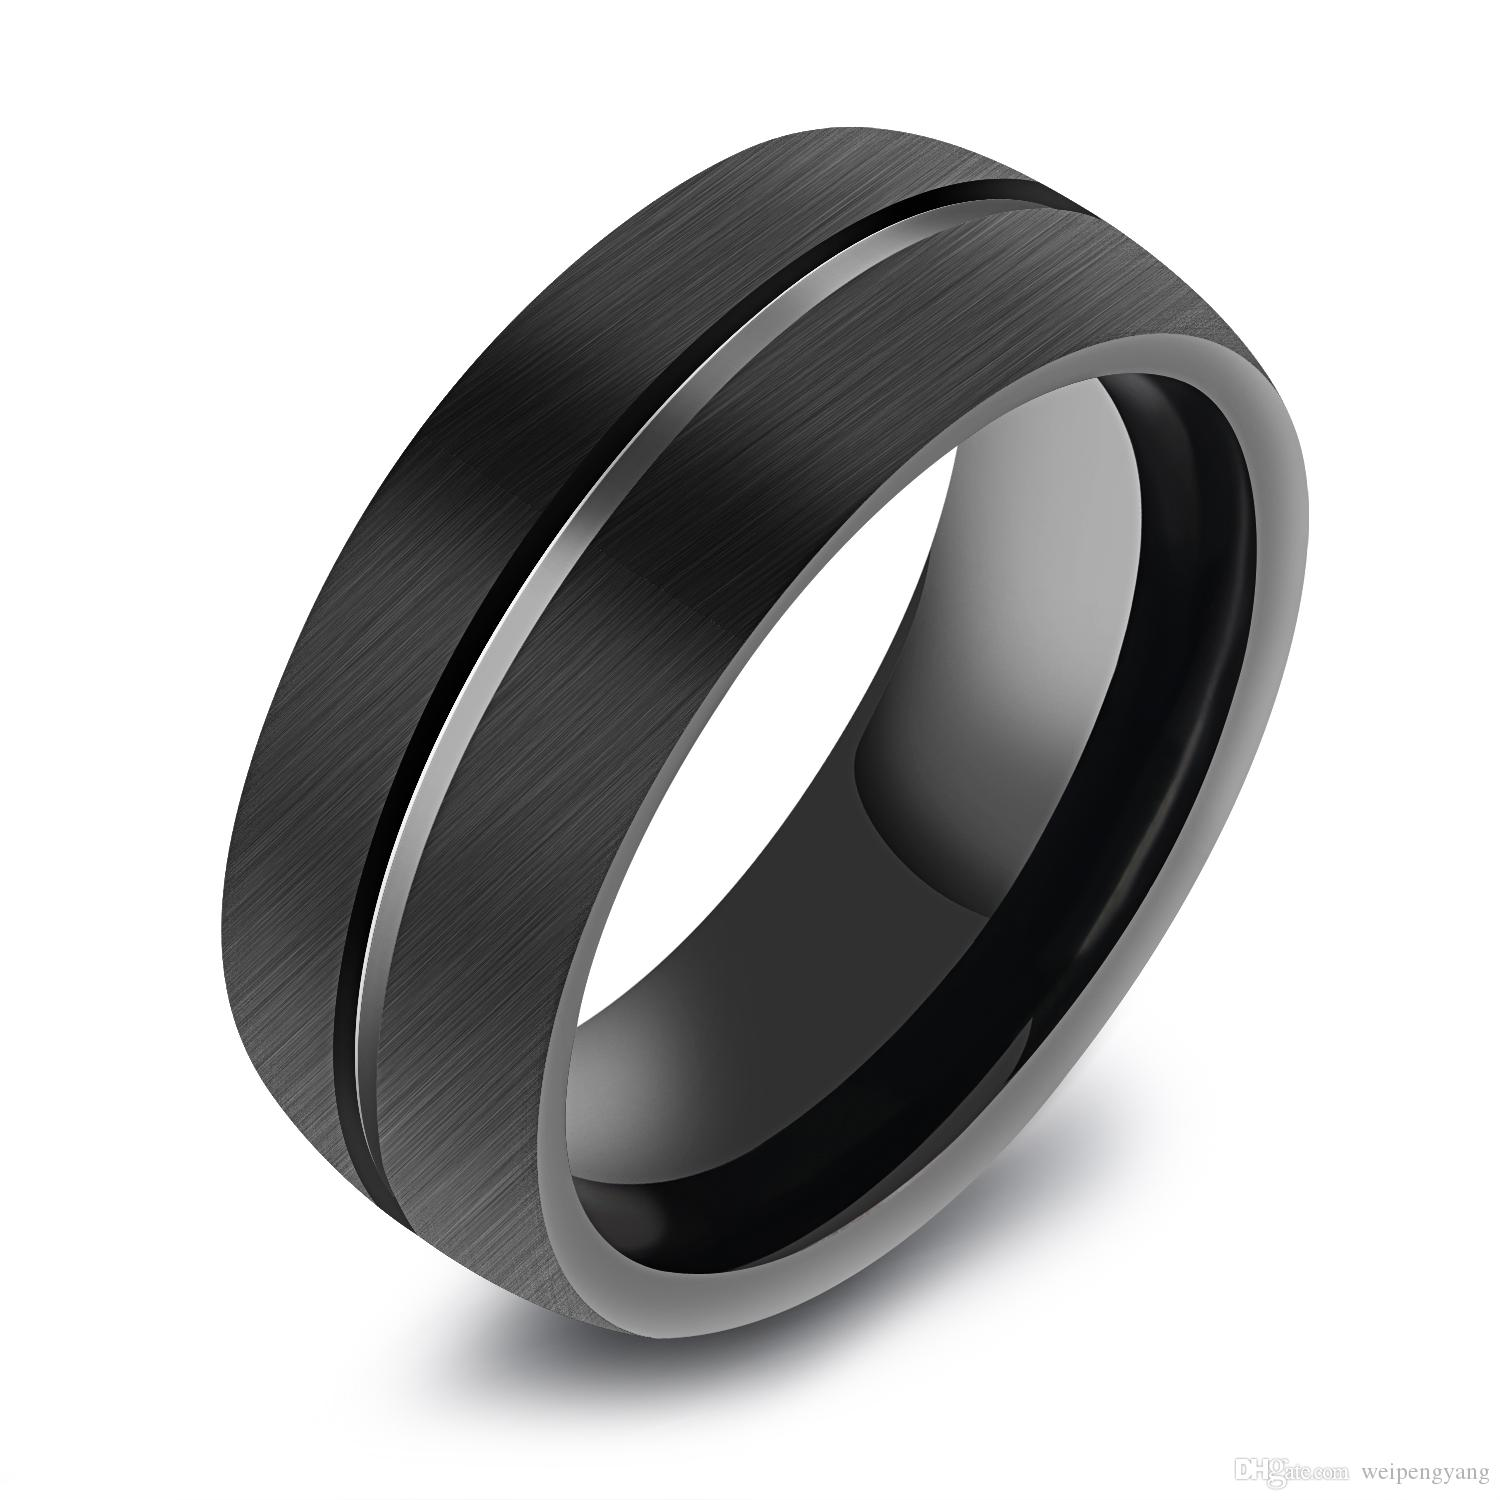 black big store ring surface product carbide for brushed s silver rings wedding online with tungsten men domed mens band